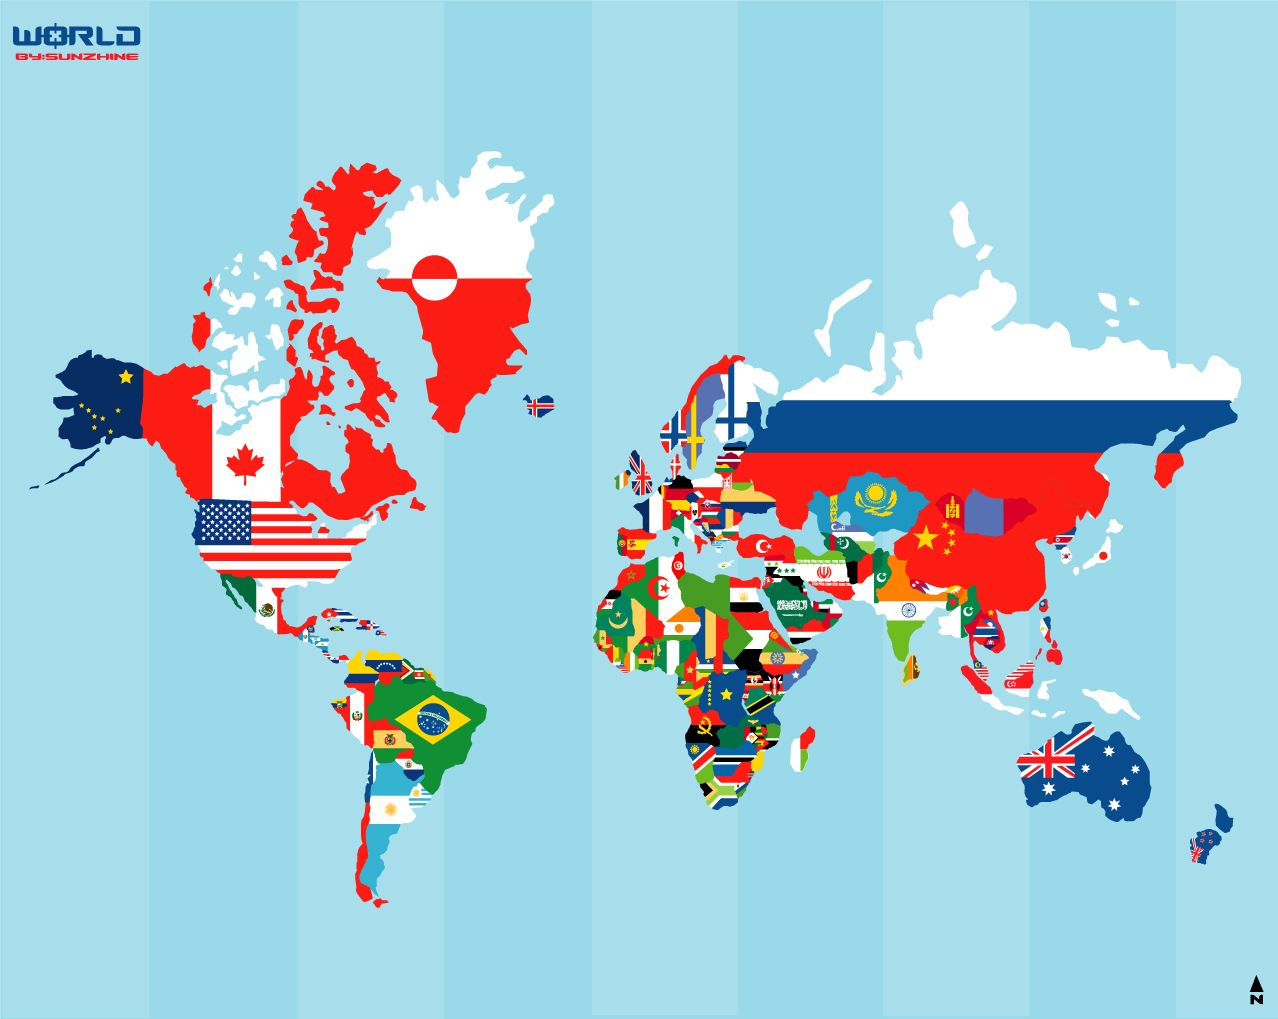 What is socialism part 4 socialism and nationalism flags love the map with flags ideapossibly a tattoo with the outlines filled in with their flag when i visit the country gumiabroncs Image collections